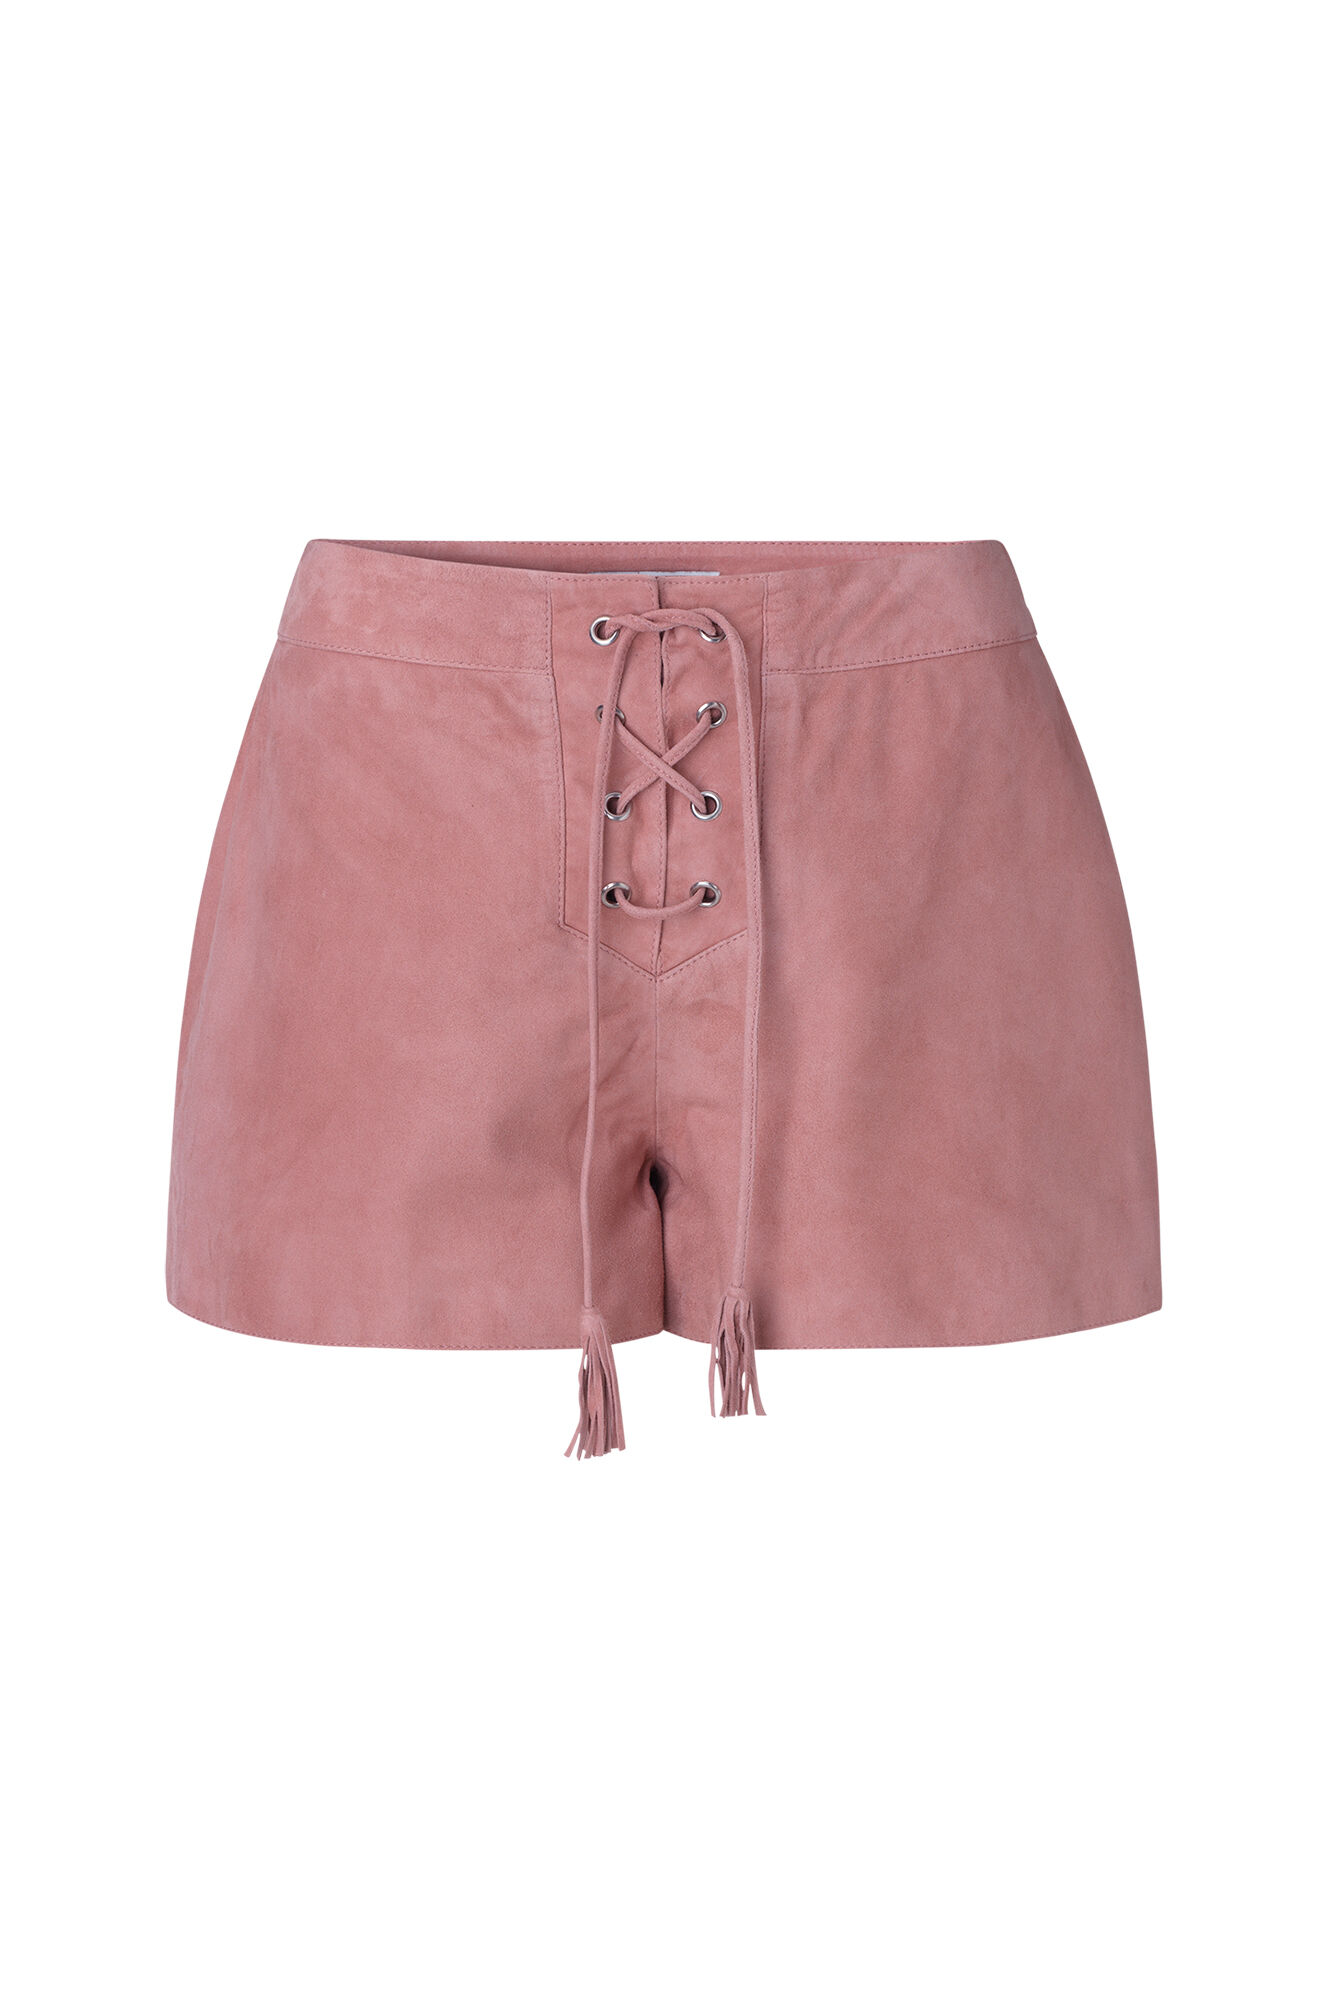 ENRODEO SUEDE SHORTS 6335, ROSEMARY LIP